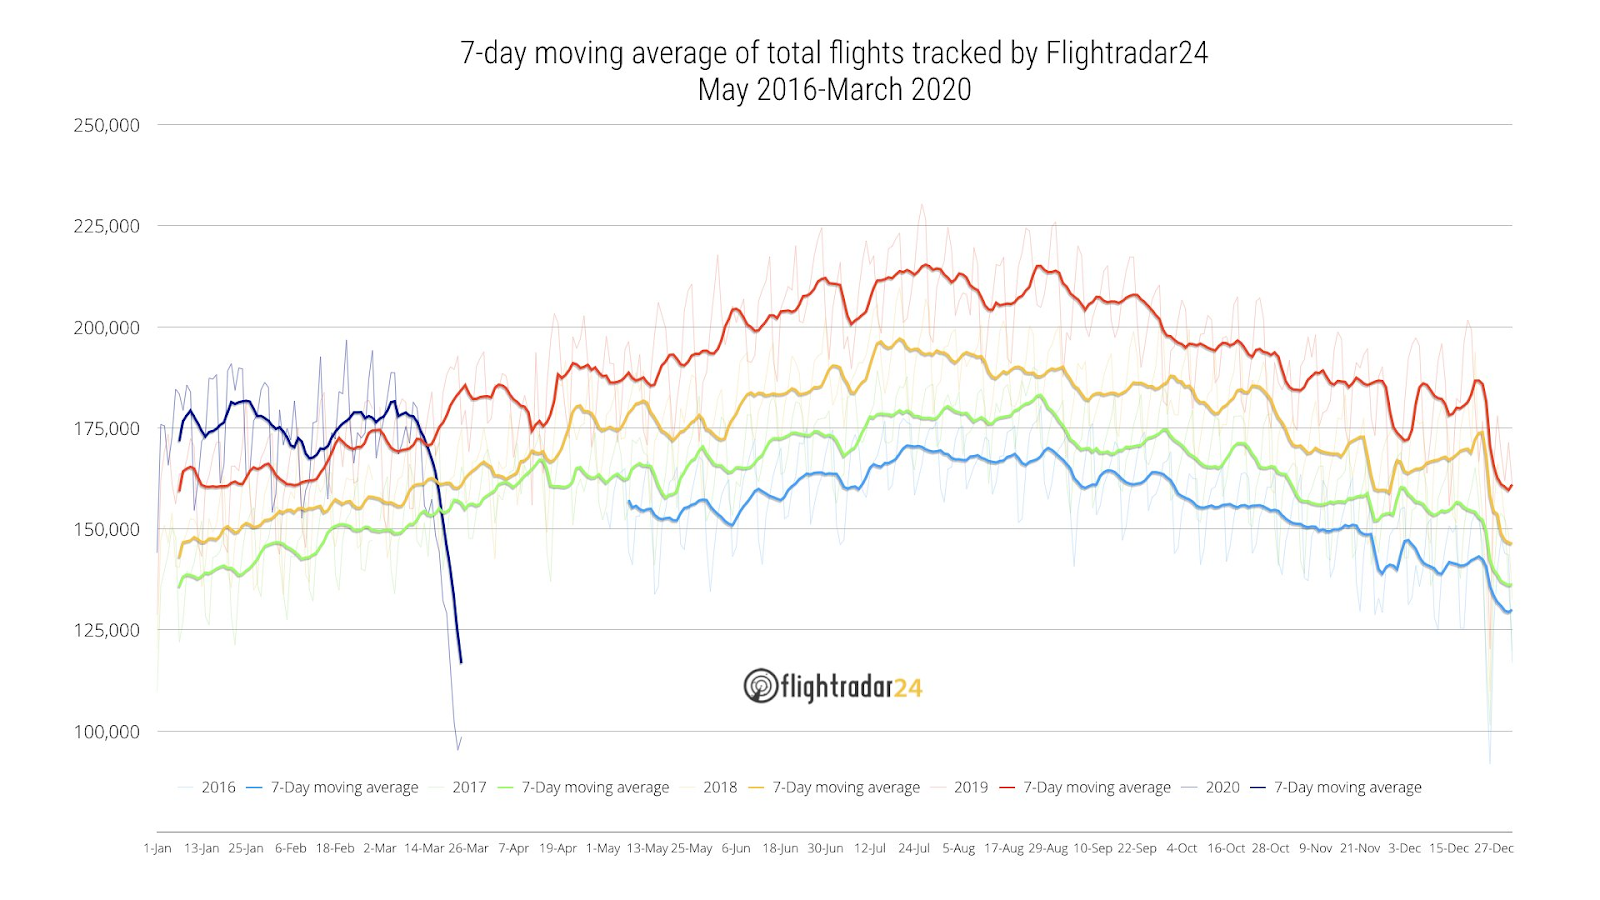 Flightradar24 Flights March 2020